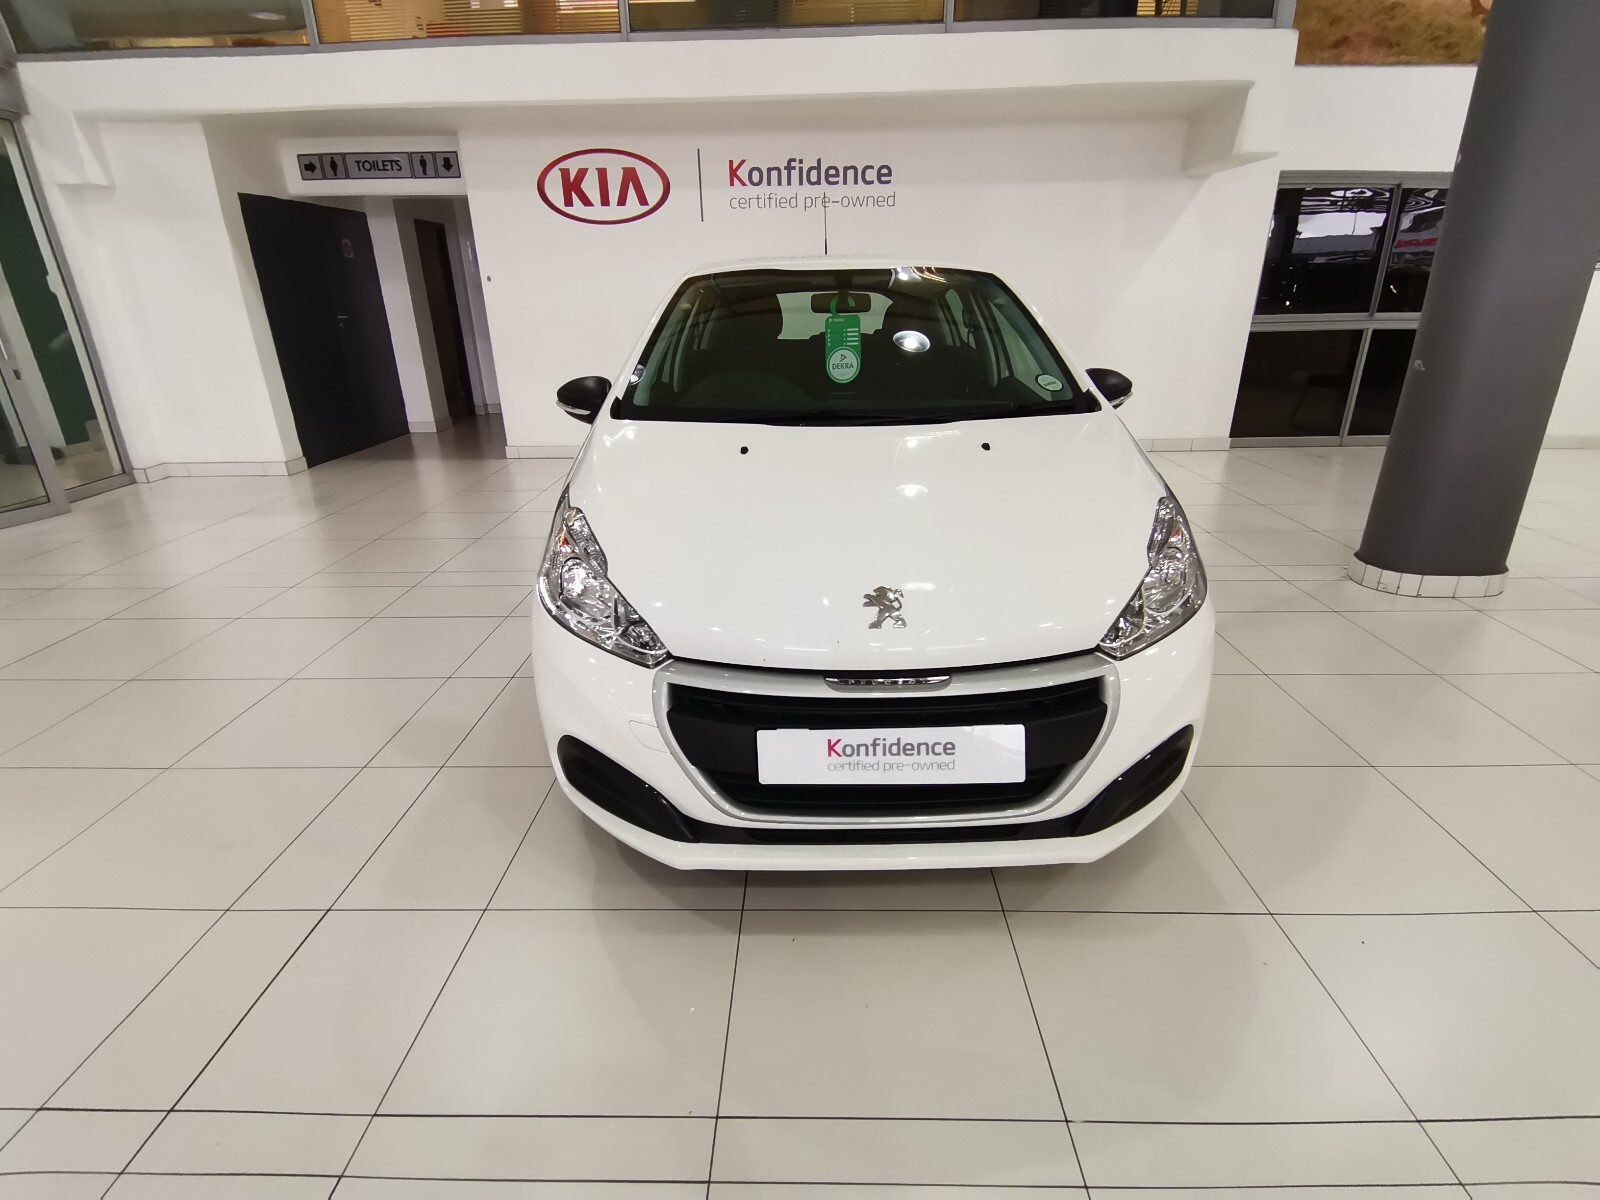 PEUGEOT POP ART 1.0 PURETECH 5DR Pinetown 1334224